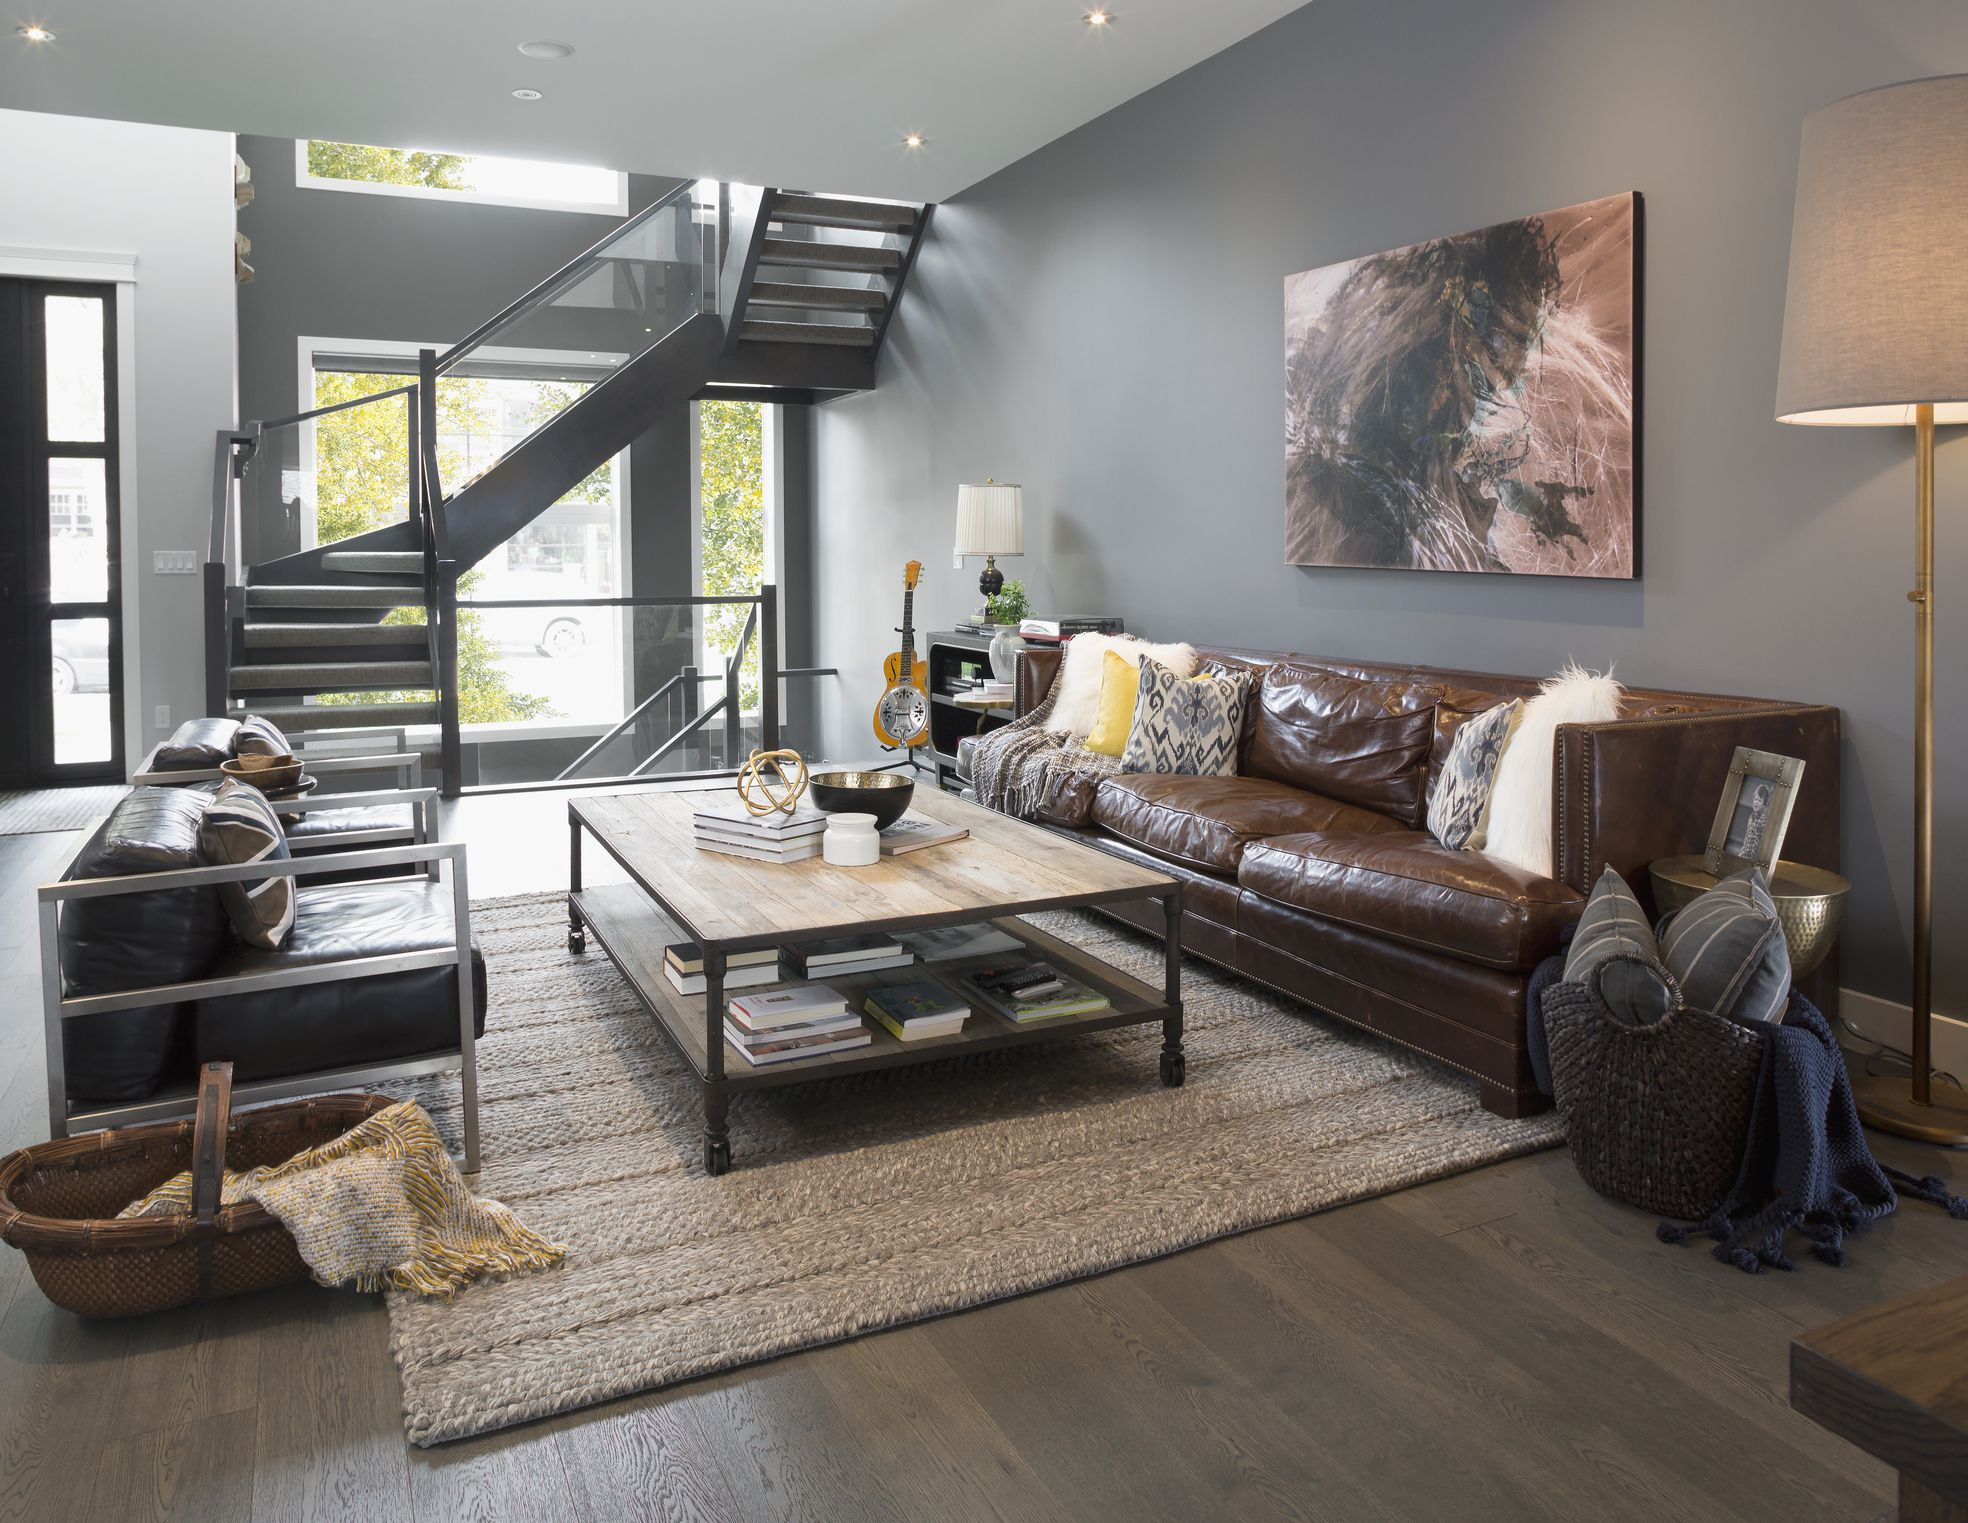 choosing the right interior paint finish for your home - Interior Paint Colors For Living Room